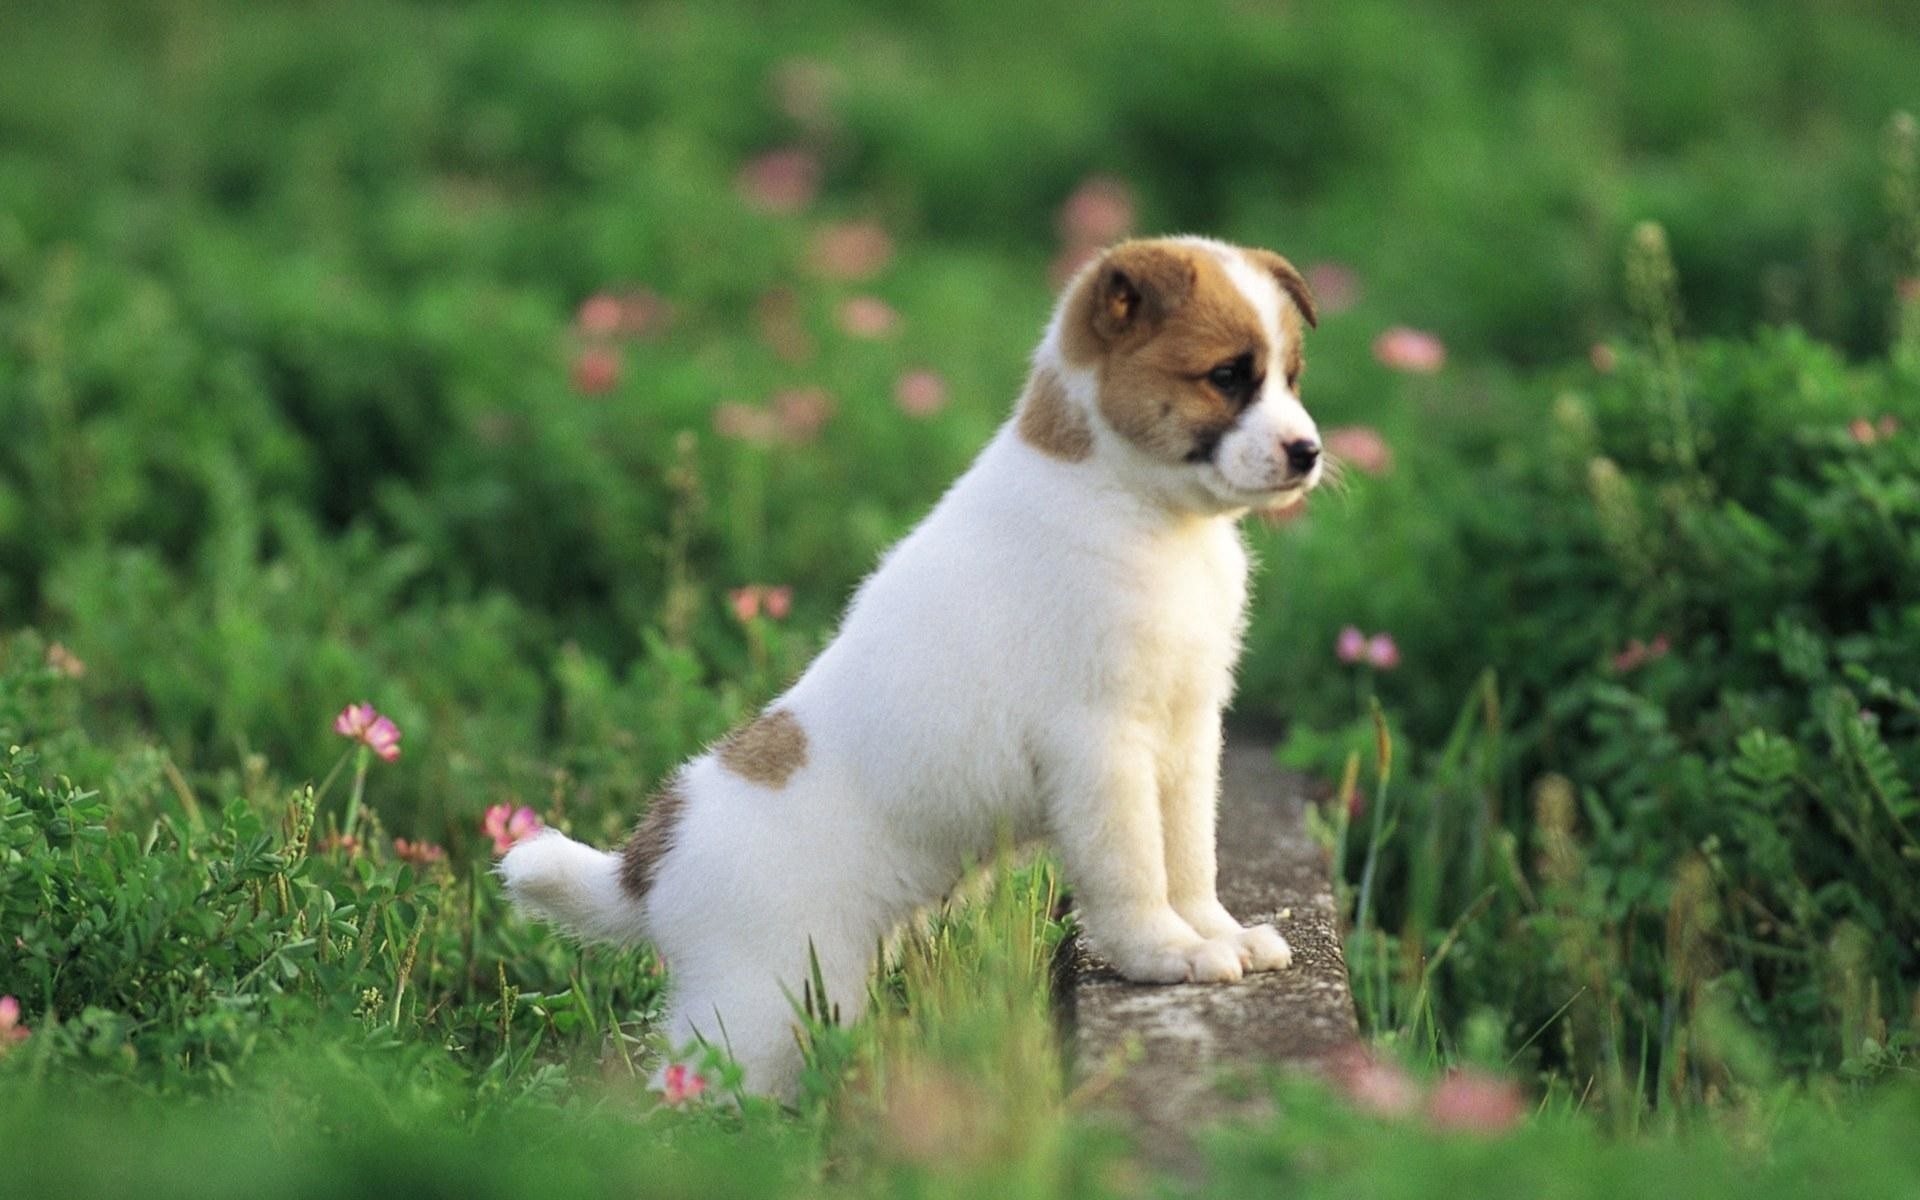 … free dog wallpapers wallpaper cave …